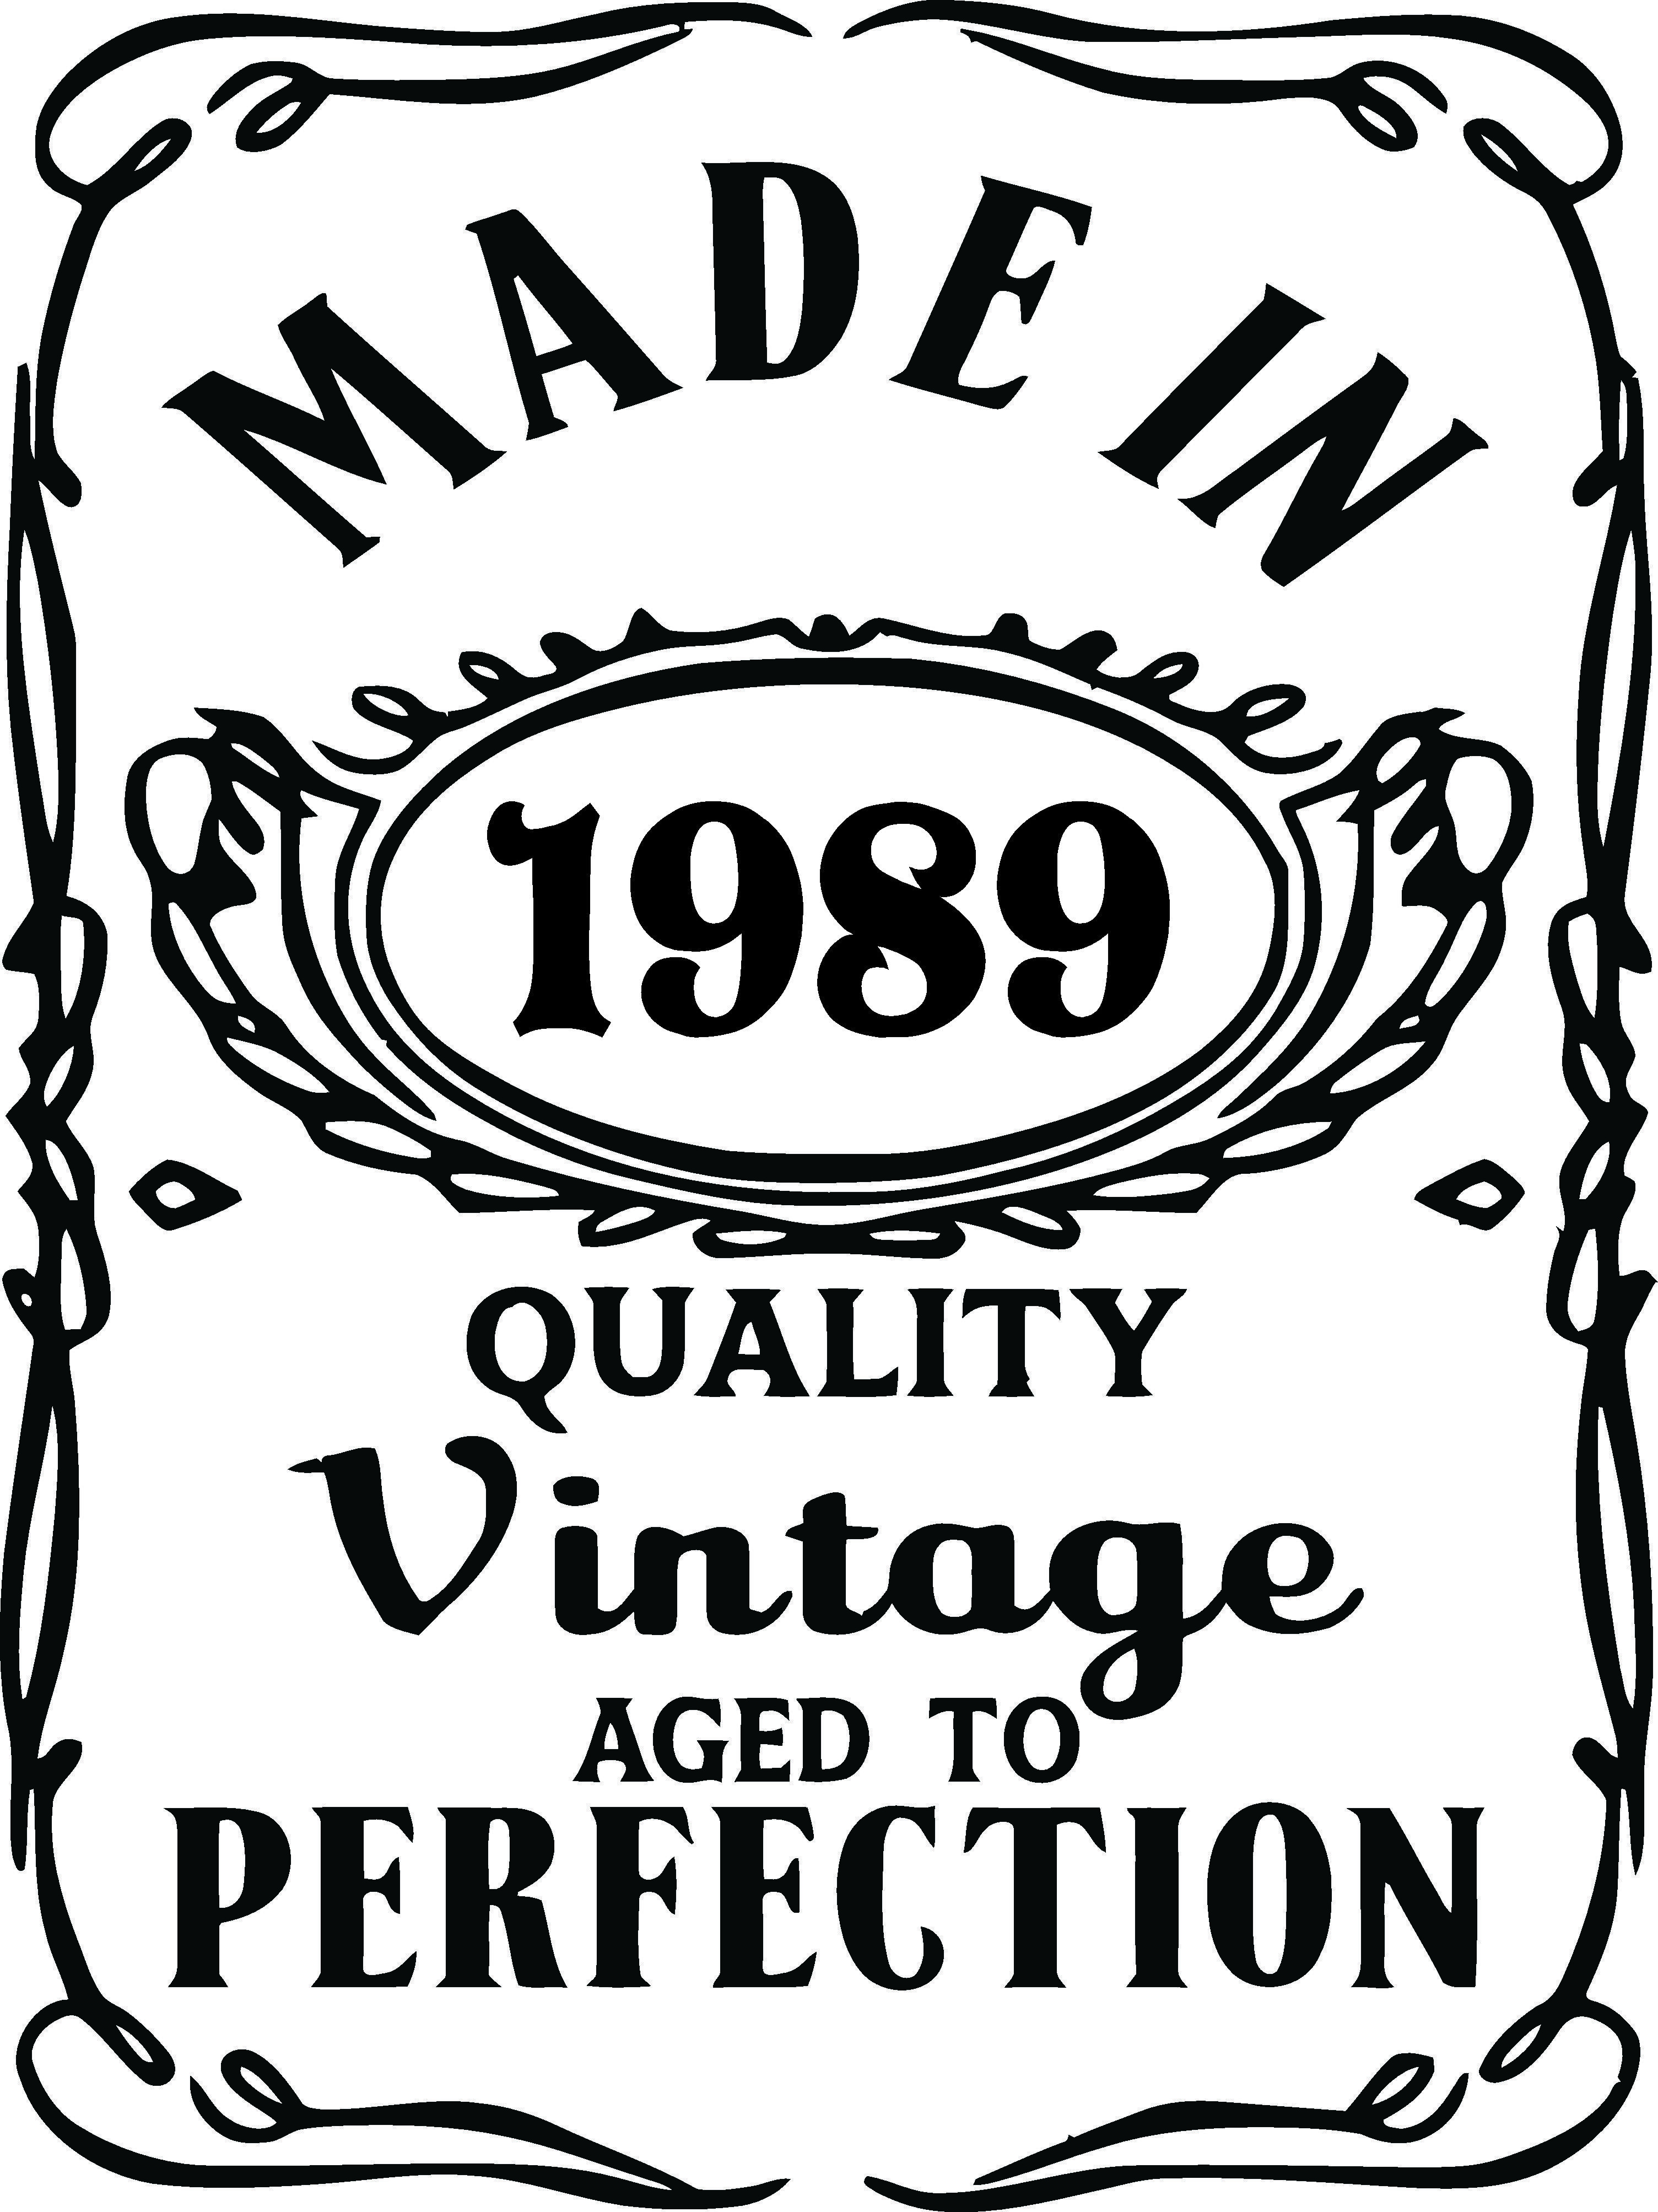 Made In Quality Vintage Aged To Perfection Sunshine